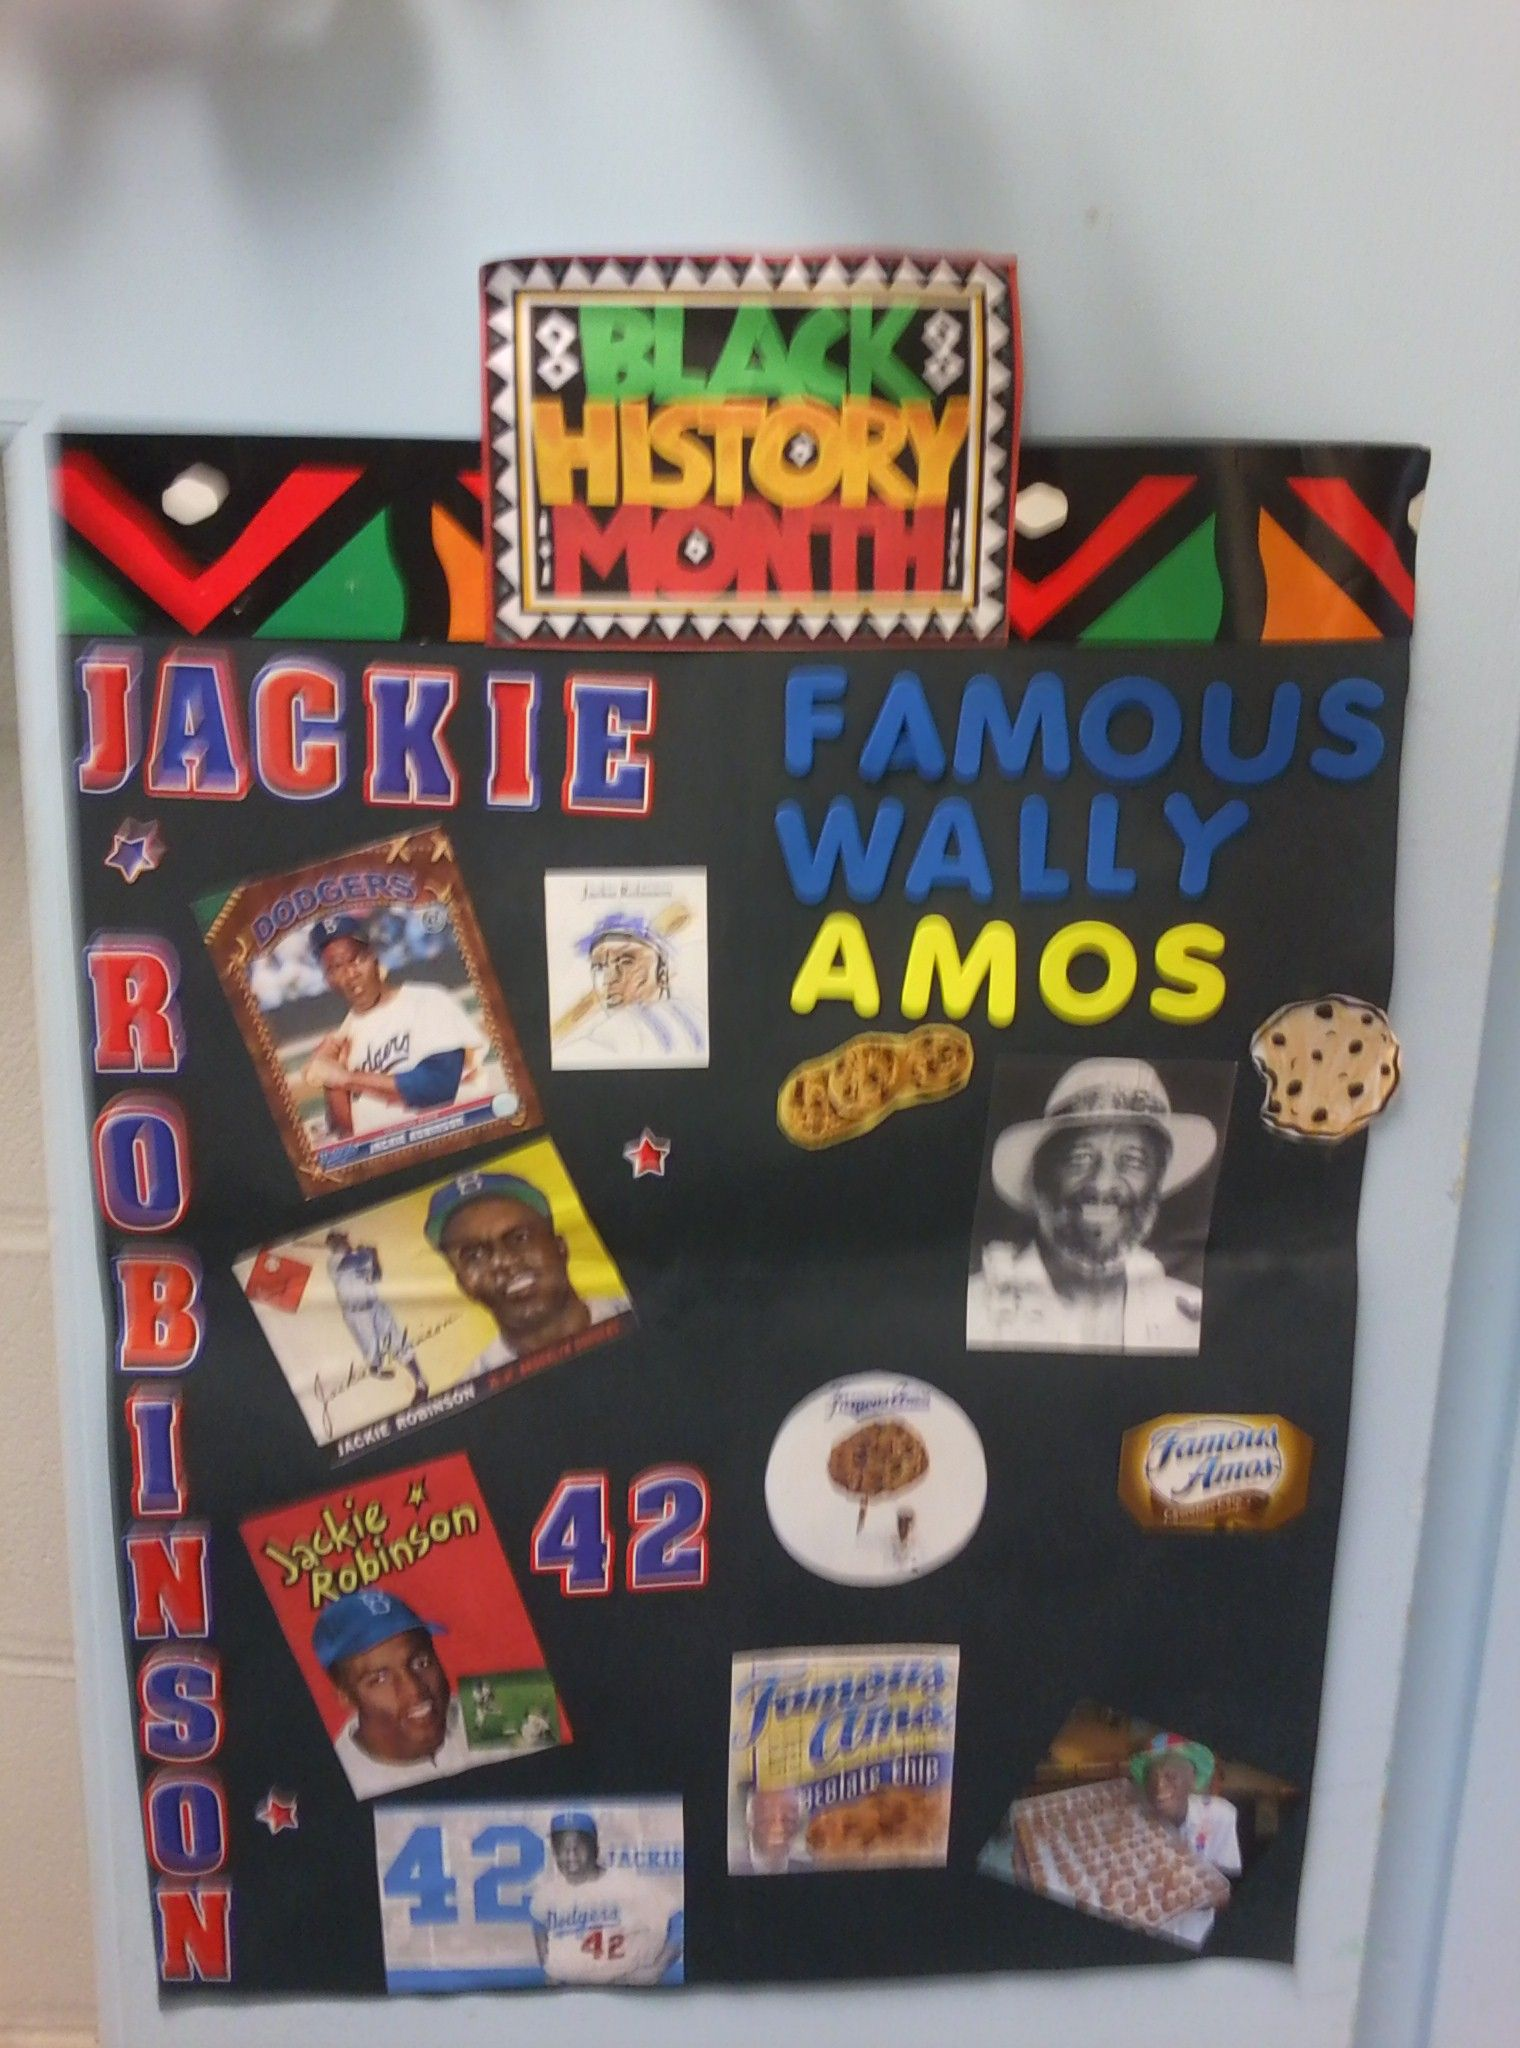 Honoring Jackie Robinson & Famous Wally Amos. Baseball & Cookies!